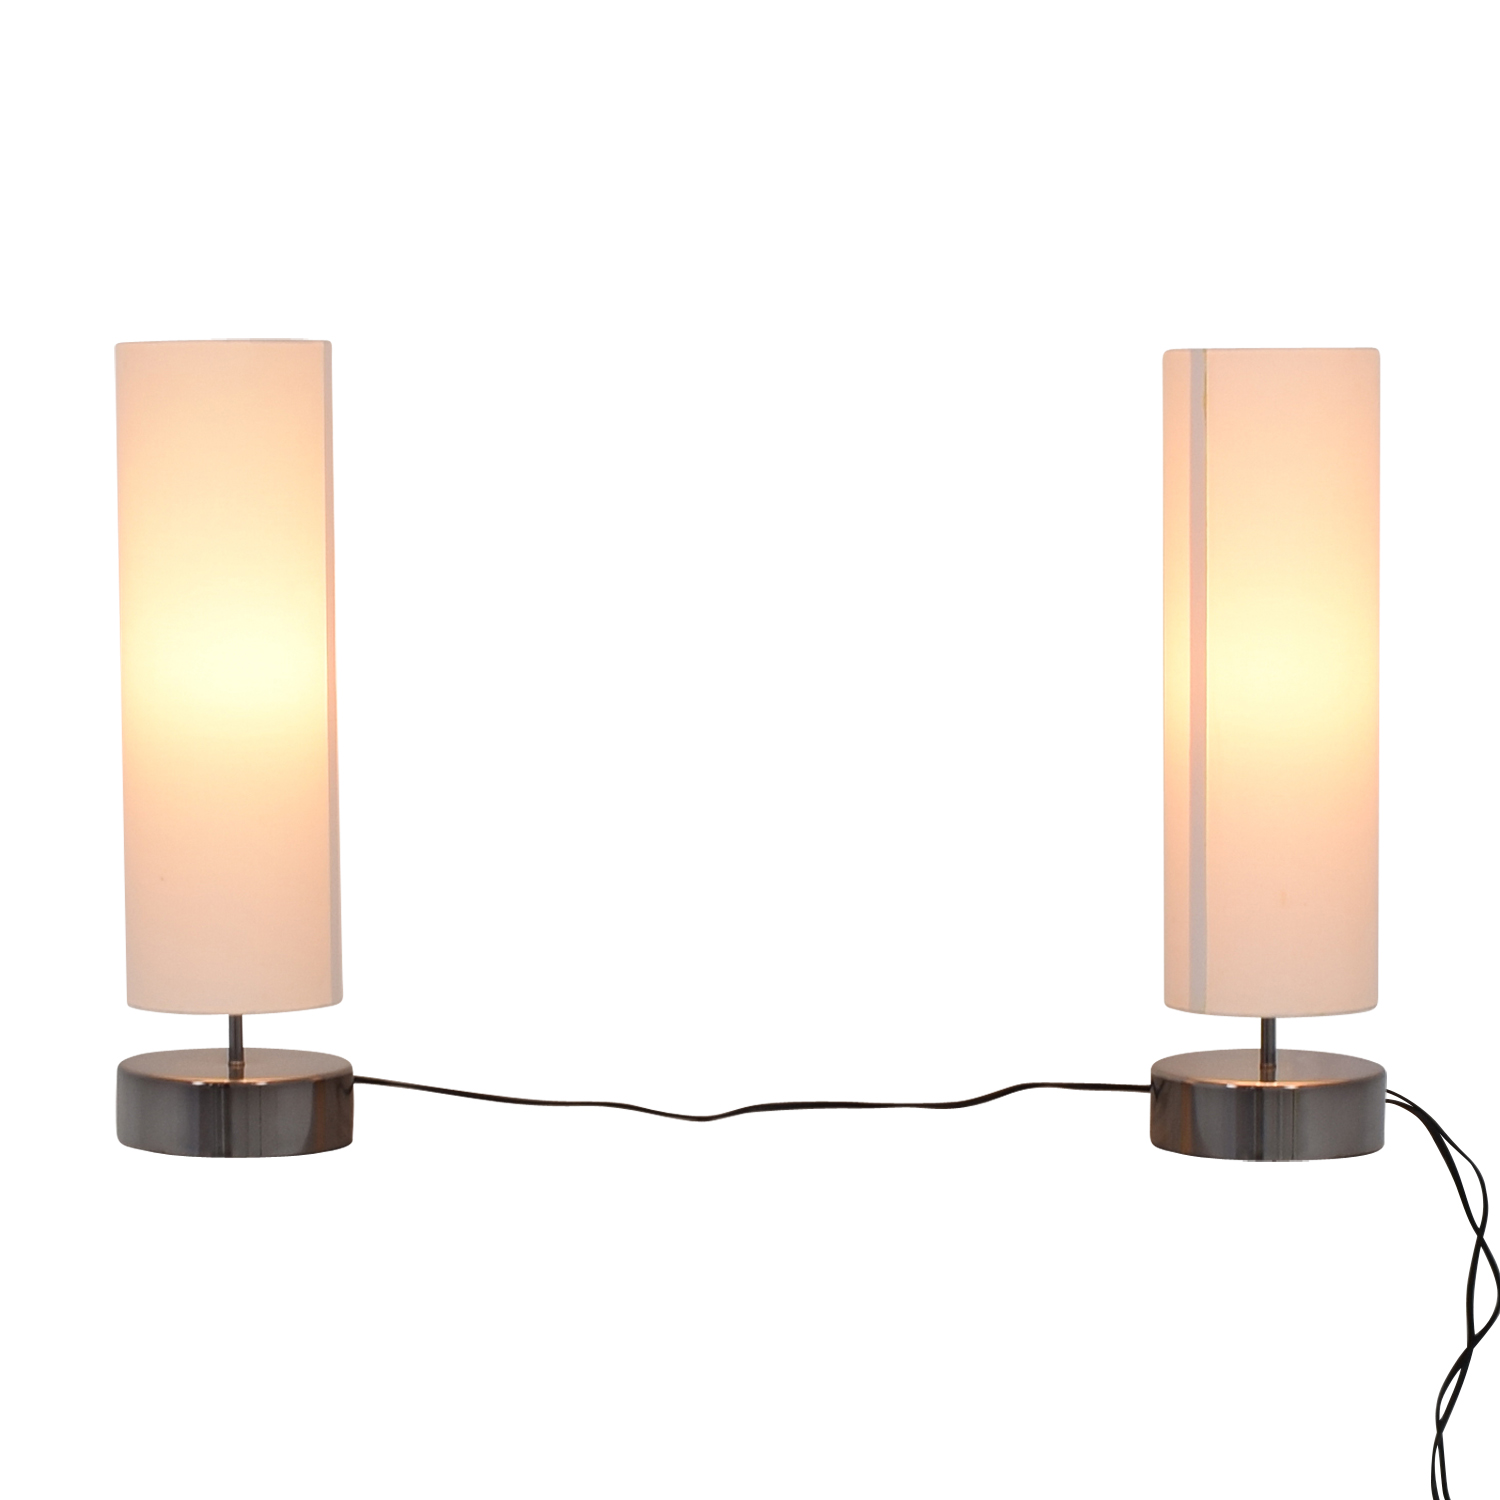 CB2 CB2 Paramount Table Lamps discount